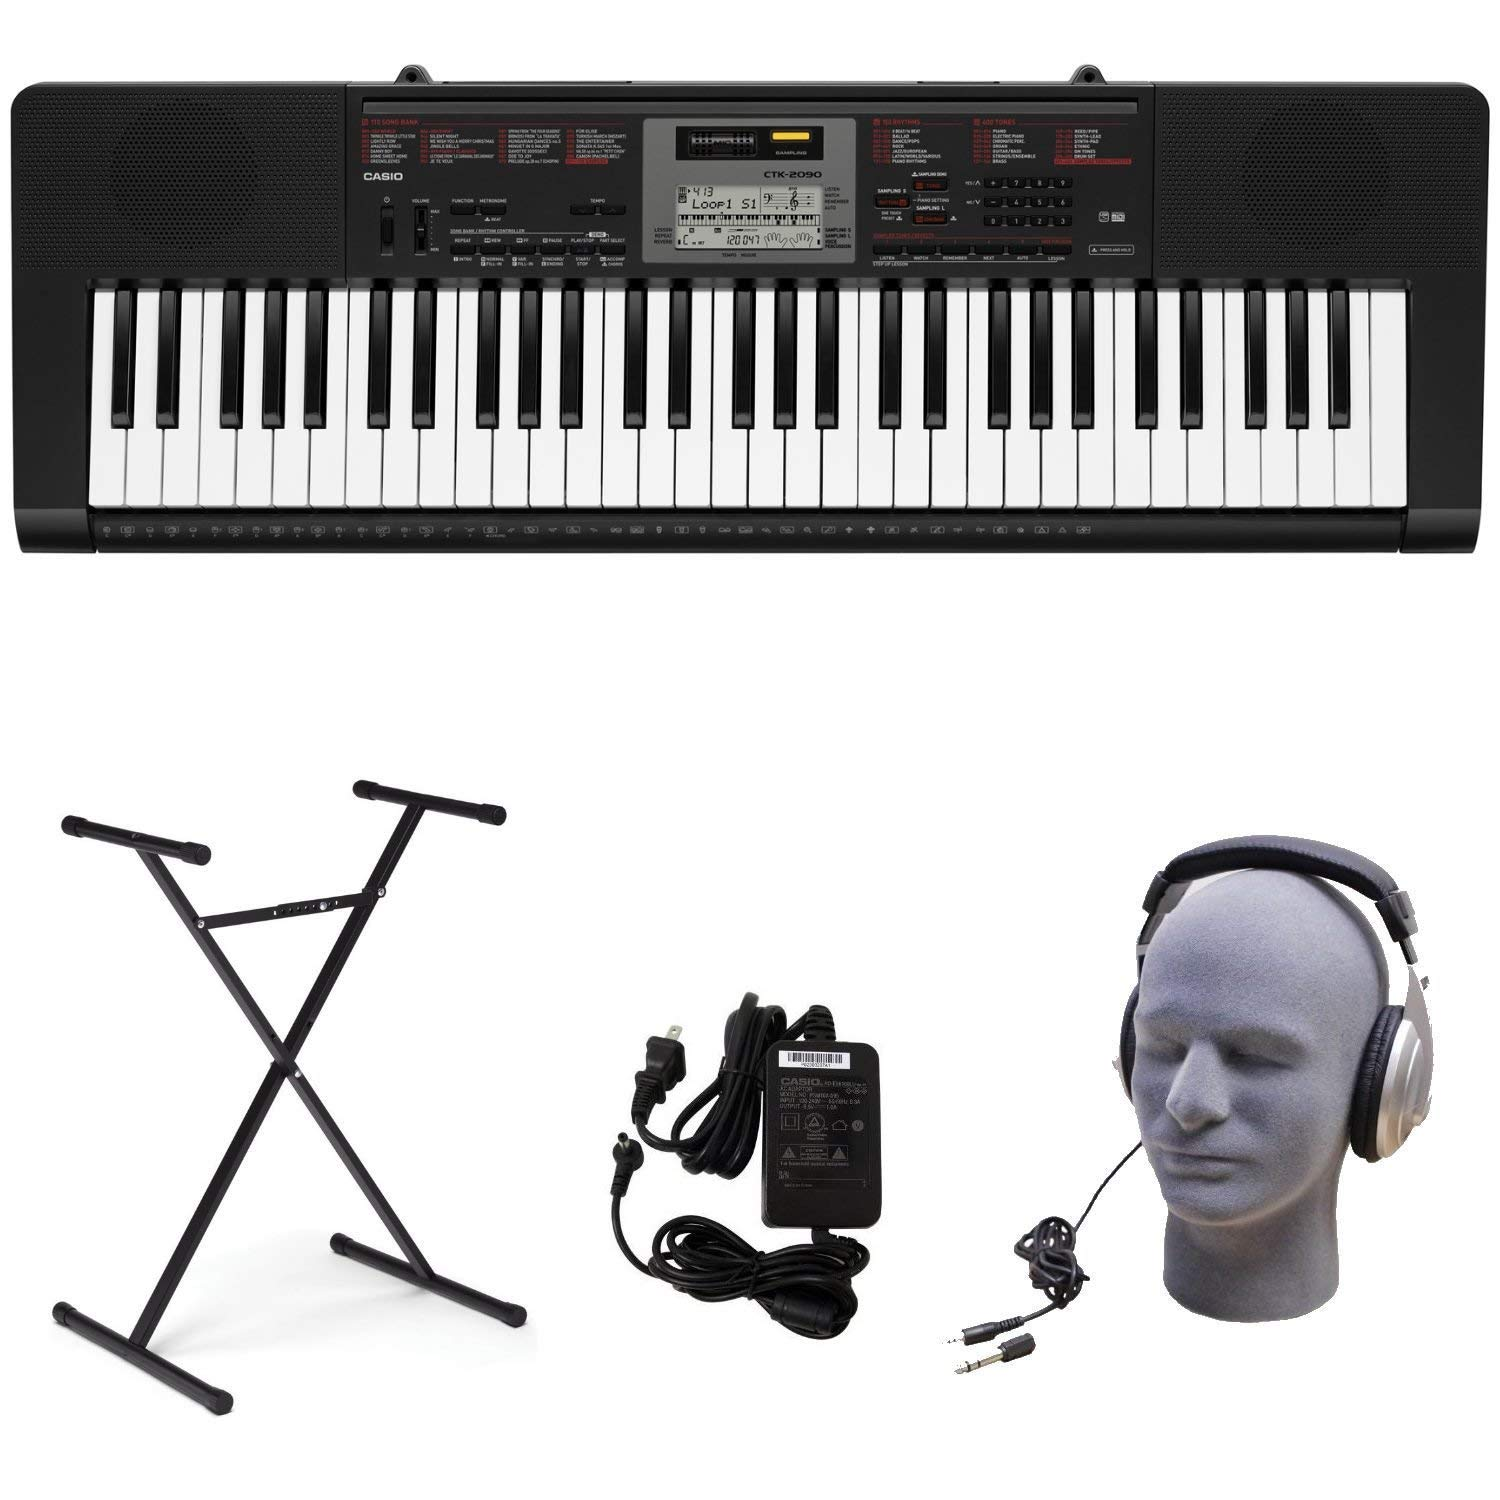 Casio CTK-2090 PPK 61-Key Premium Keyboard Pack with Power Supply, Stand, and Headphones by Casio